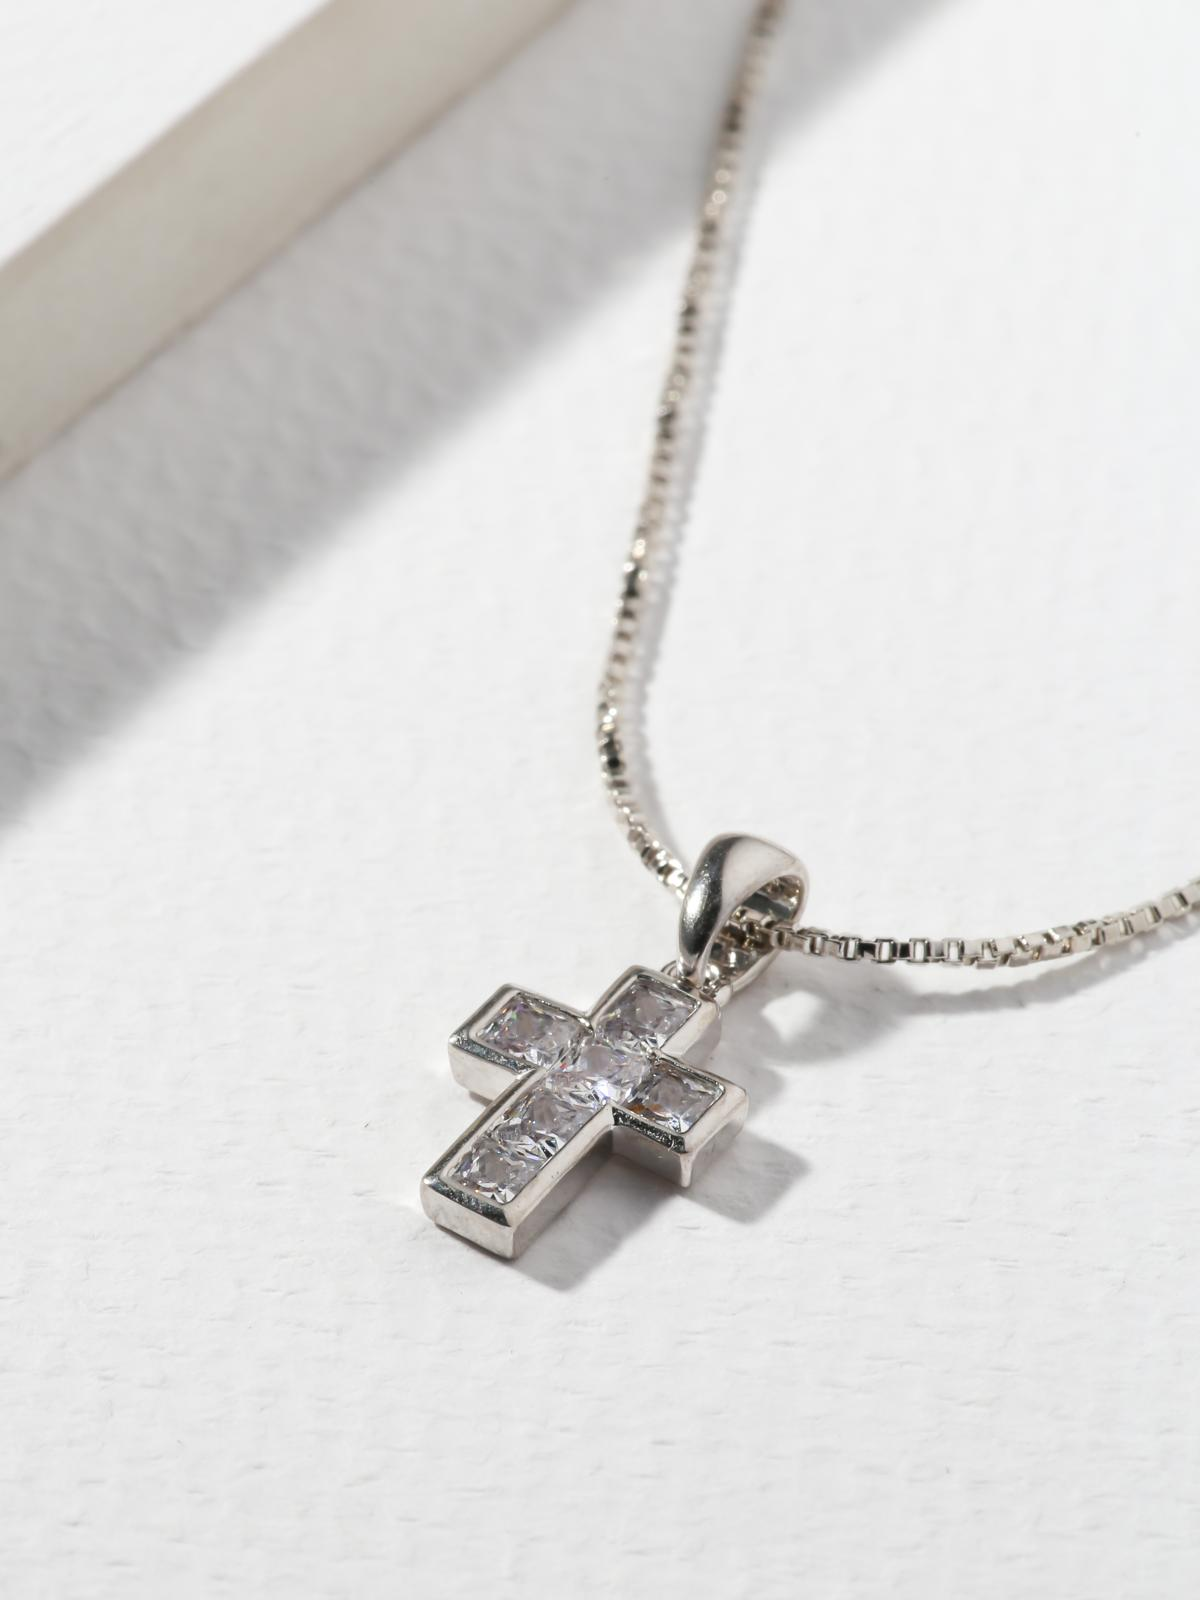 The Revered Cross Necklace